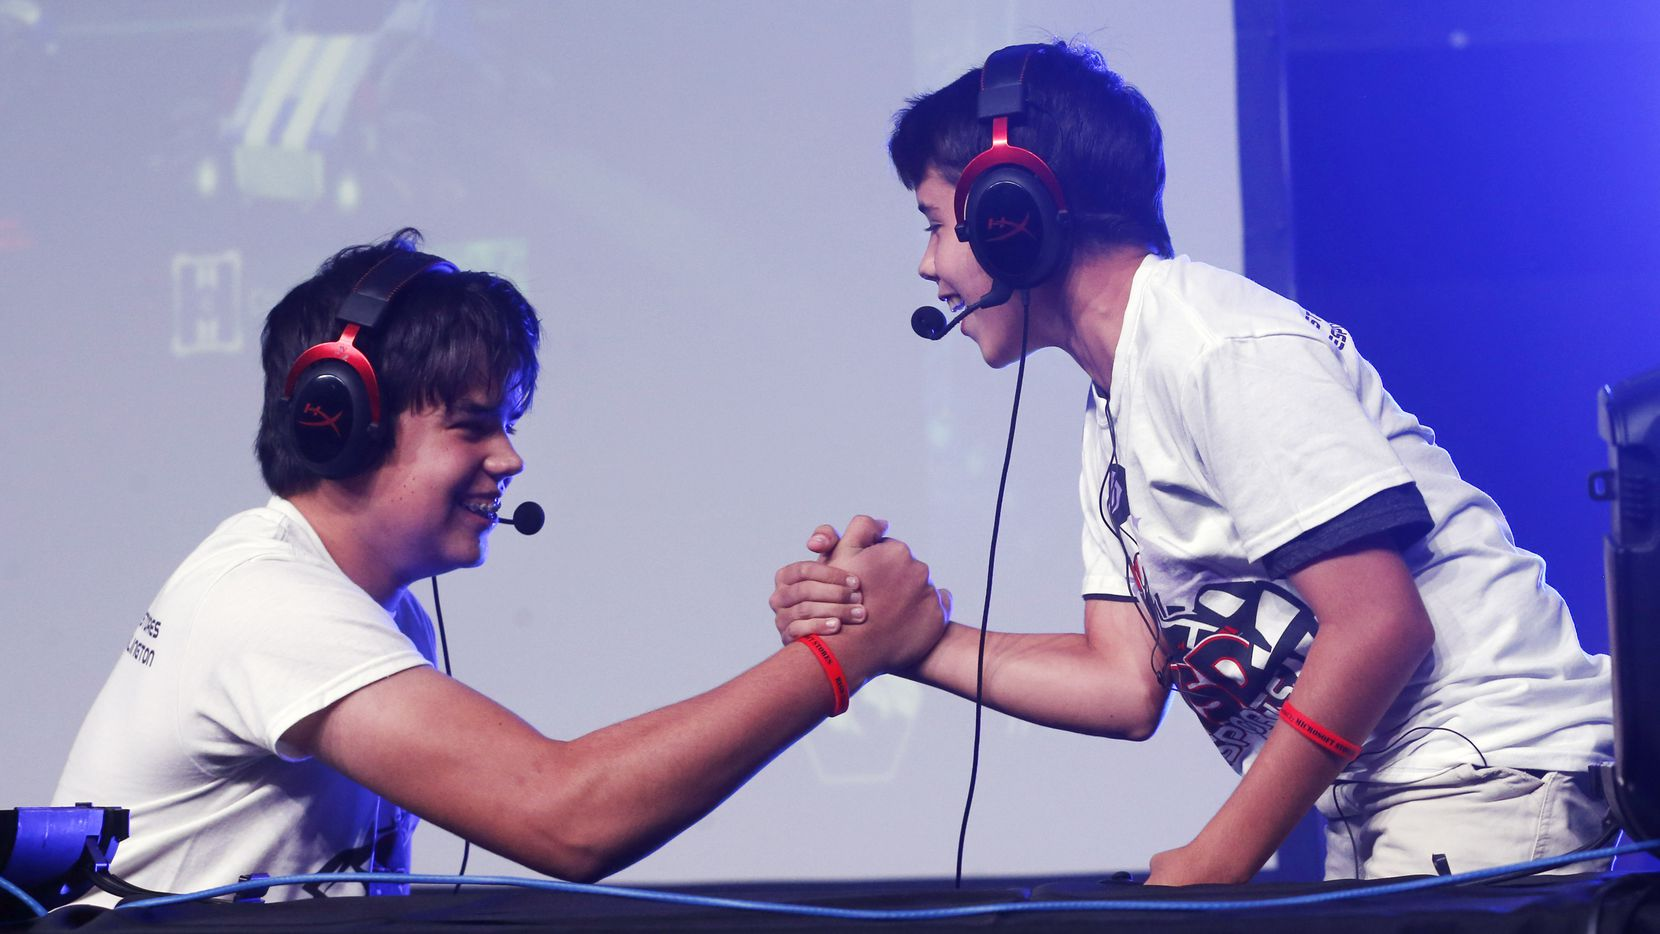 Peyton Clothier, 14 (left) celebrates with his brother Colton Clothier, 12 (right) of Burleson after winning a game of Rocket League during the BISD Esports Fall Invitational at Esports Stadium Arlington, on Saturday, September 7, 2019. Kids in grades K-12 competed in Super Smash Bros. Ultimate, Rocket League, Fortnite Battle Royale, and Minecraft. (Vernon Bryant/The Dallas Morning News)